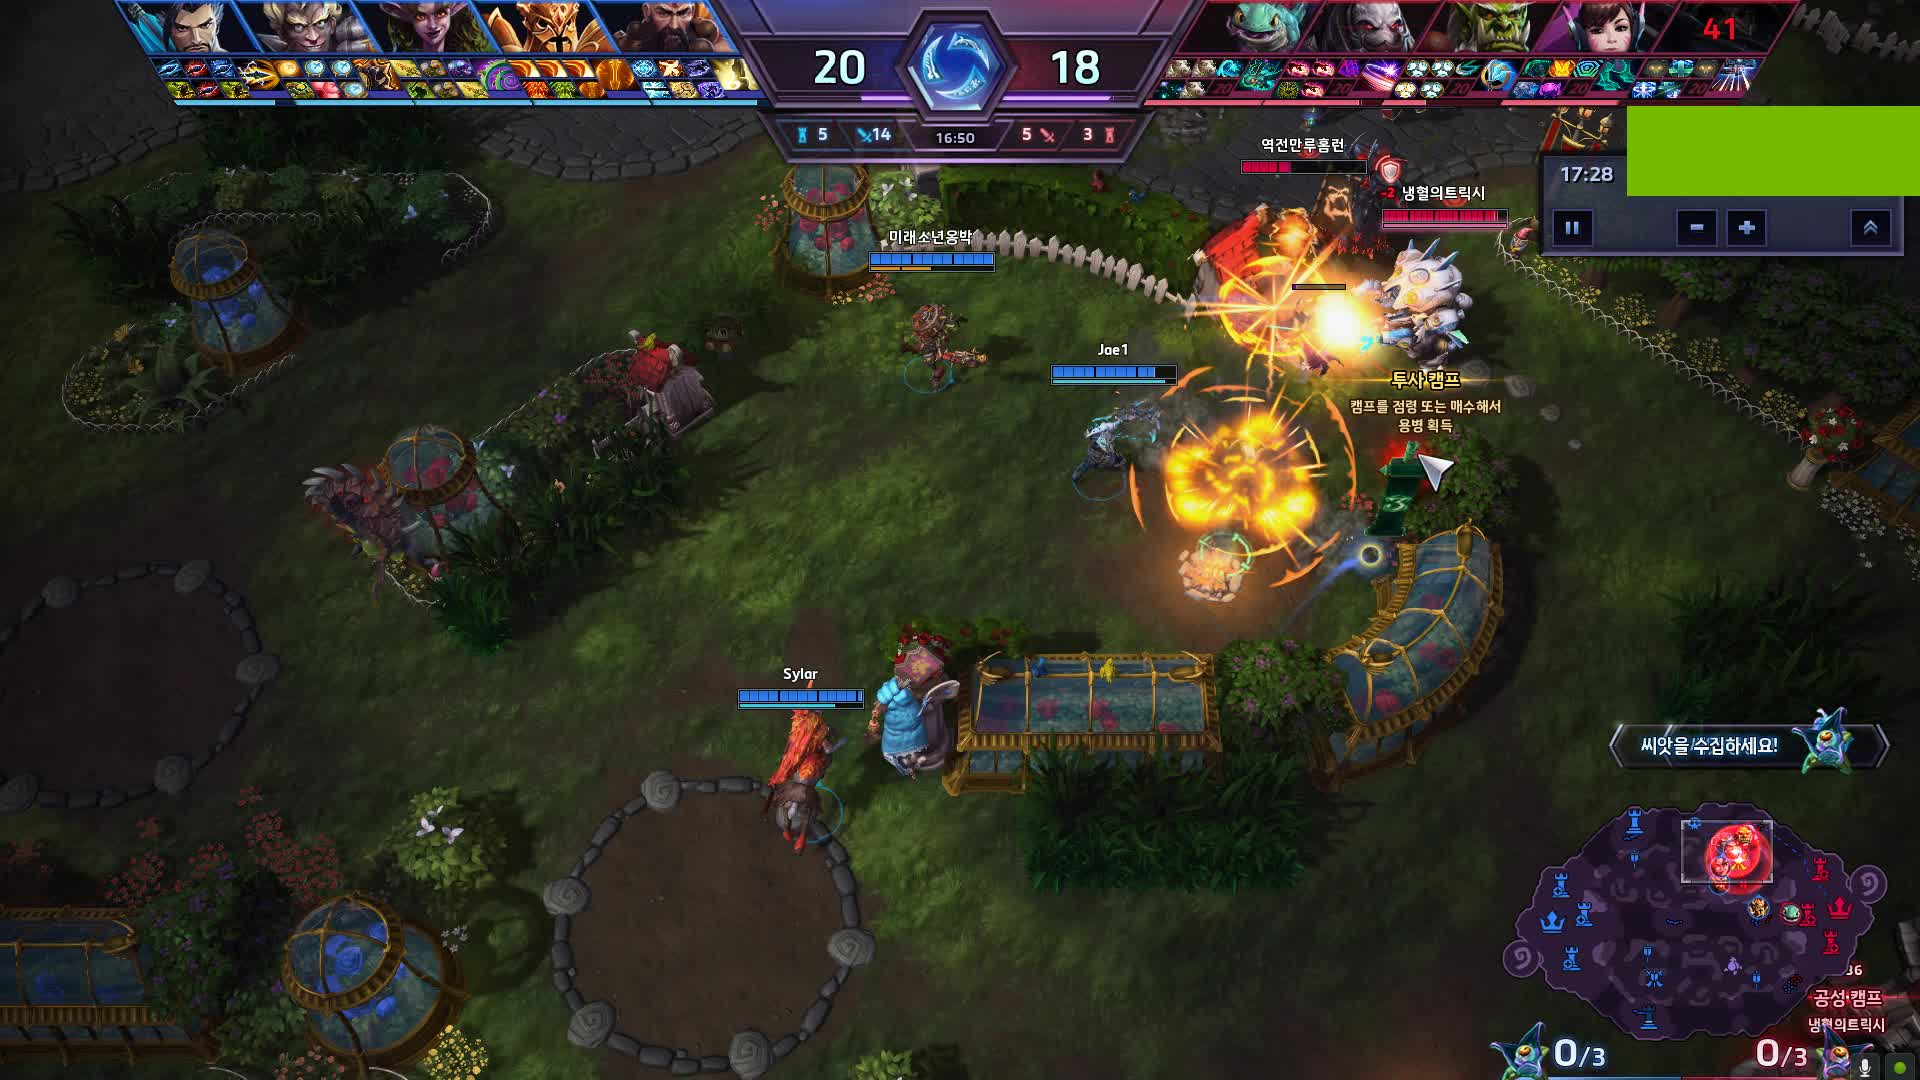 heroesofthestorm, leagueoflegends, Heroes of the Storm 2019.04.21 - 23.20.43.02 GIFs